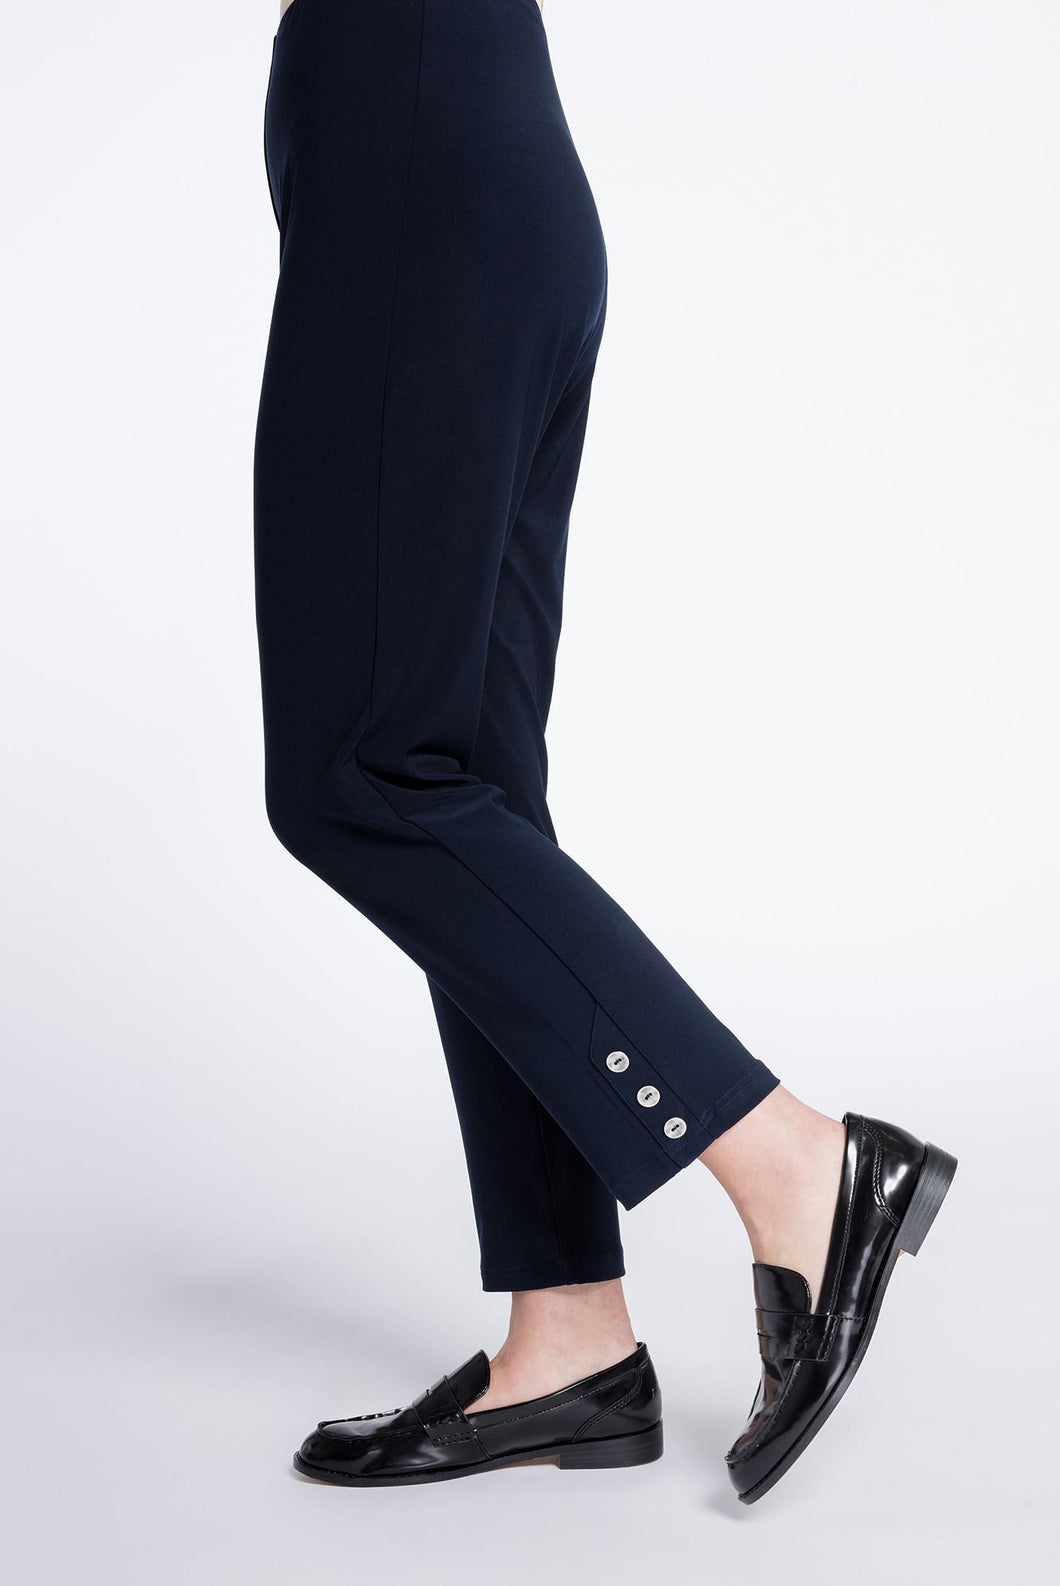 Sympli Charm Narrow Pant #27170 at www.threewildwomen.ca | Free shipping over $200 North America